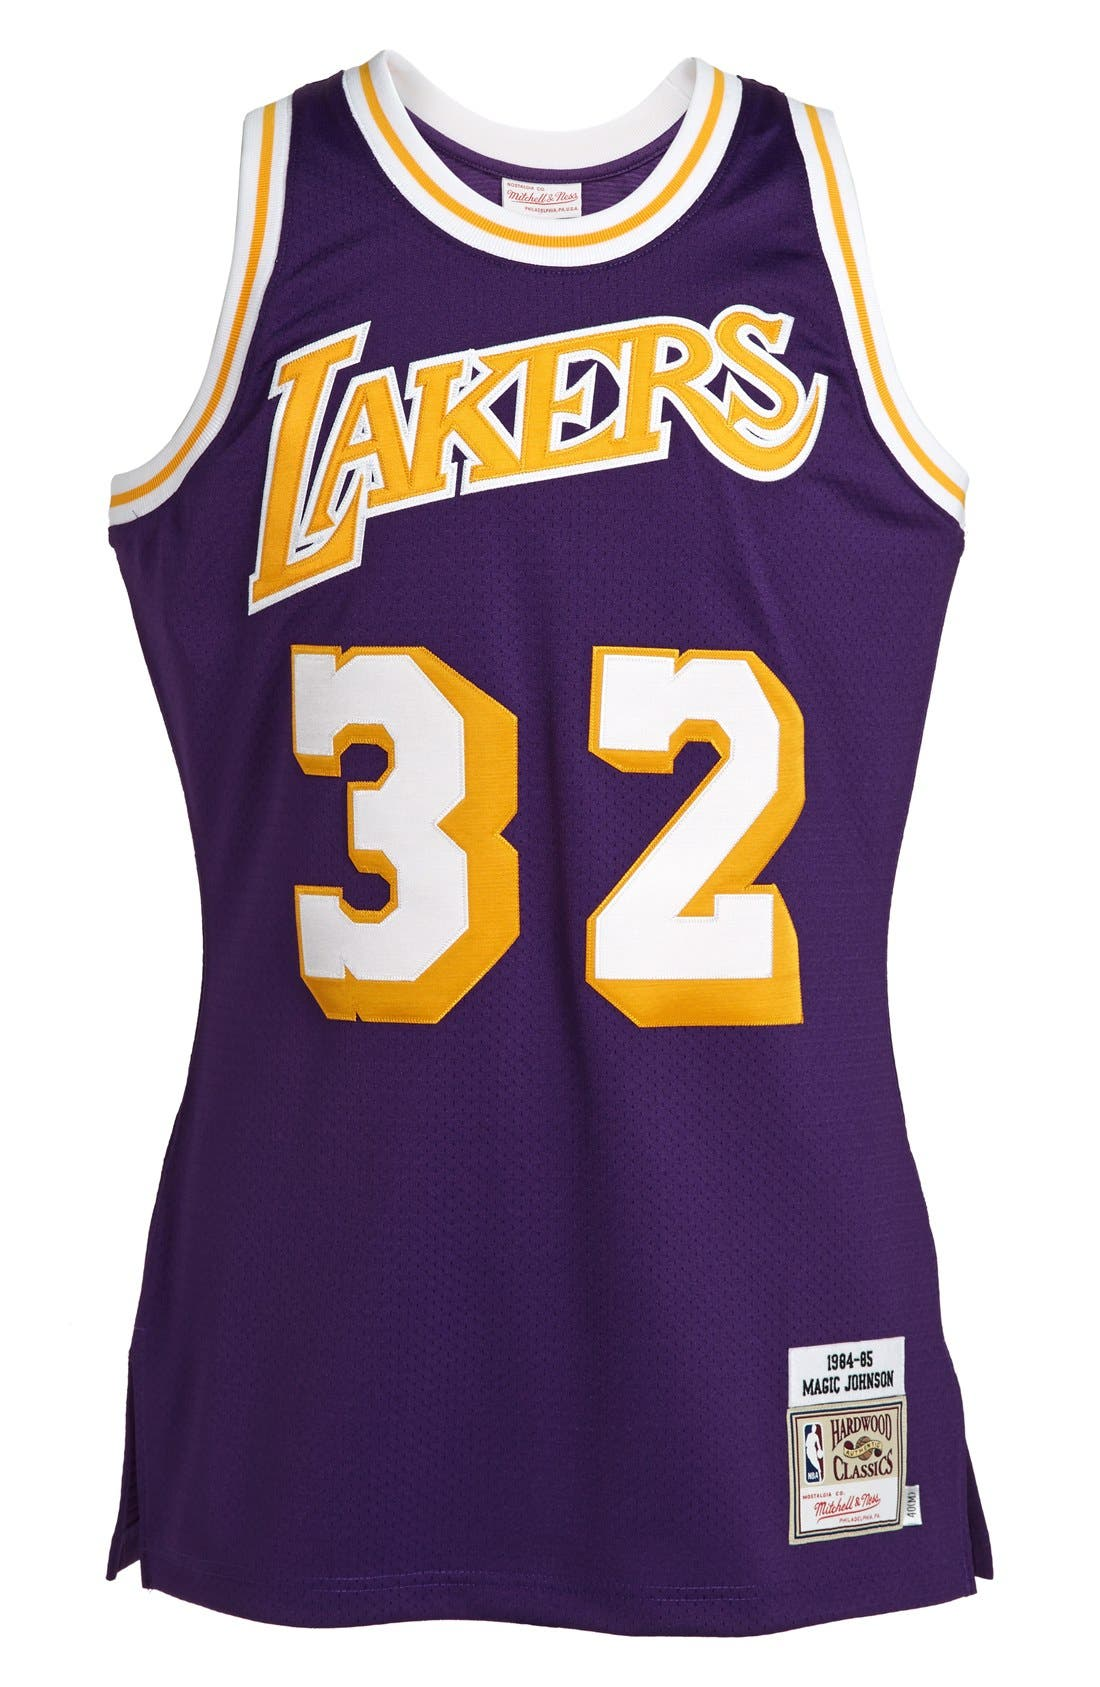 Alternate Image 1 Selected - Mitchell & Ness 'Los Angeles Lakers 1984-1985 - Magic Johnson Authentic' Basketball Jersey